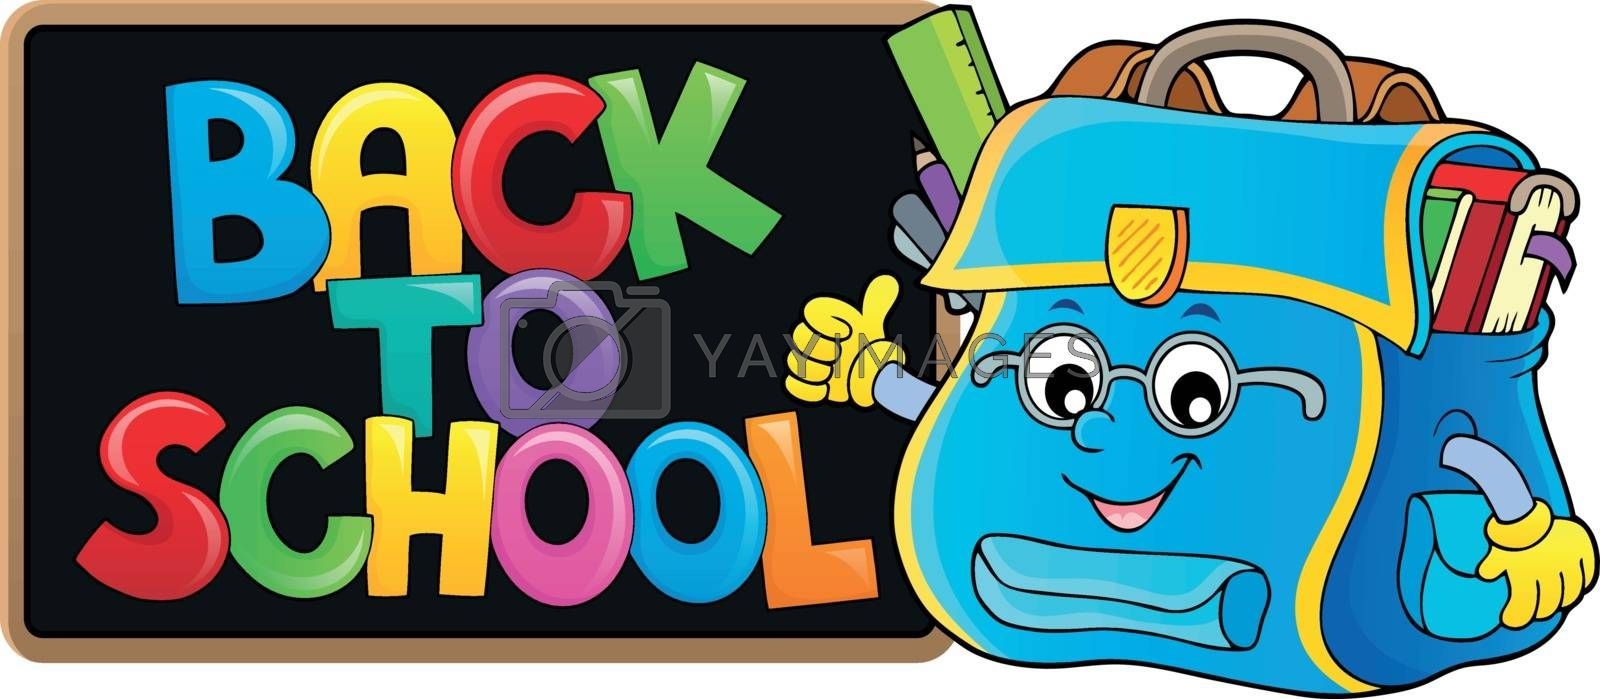 Back to school composition image 1 - eps10 vector illustration.